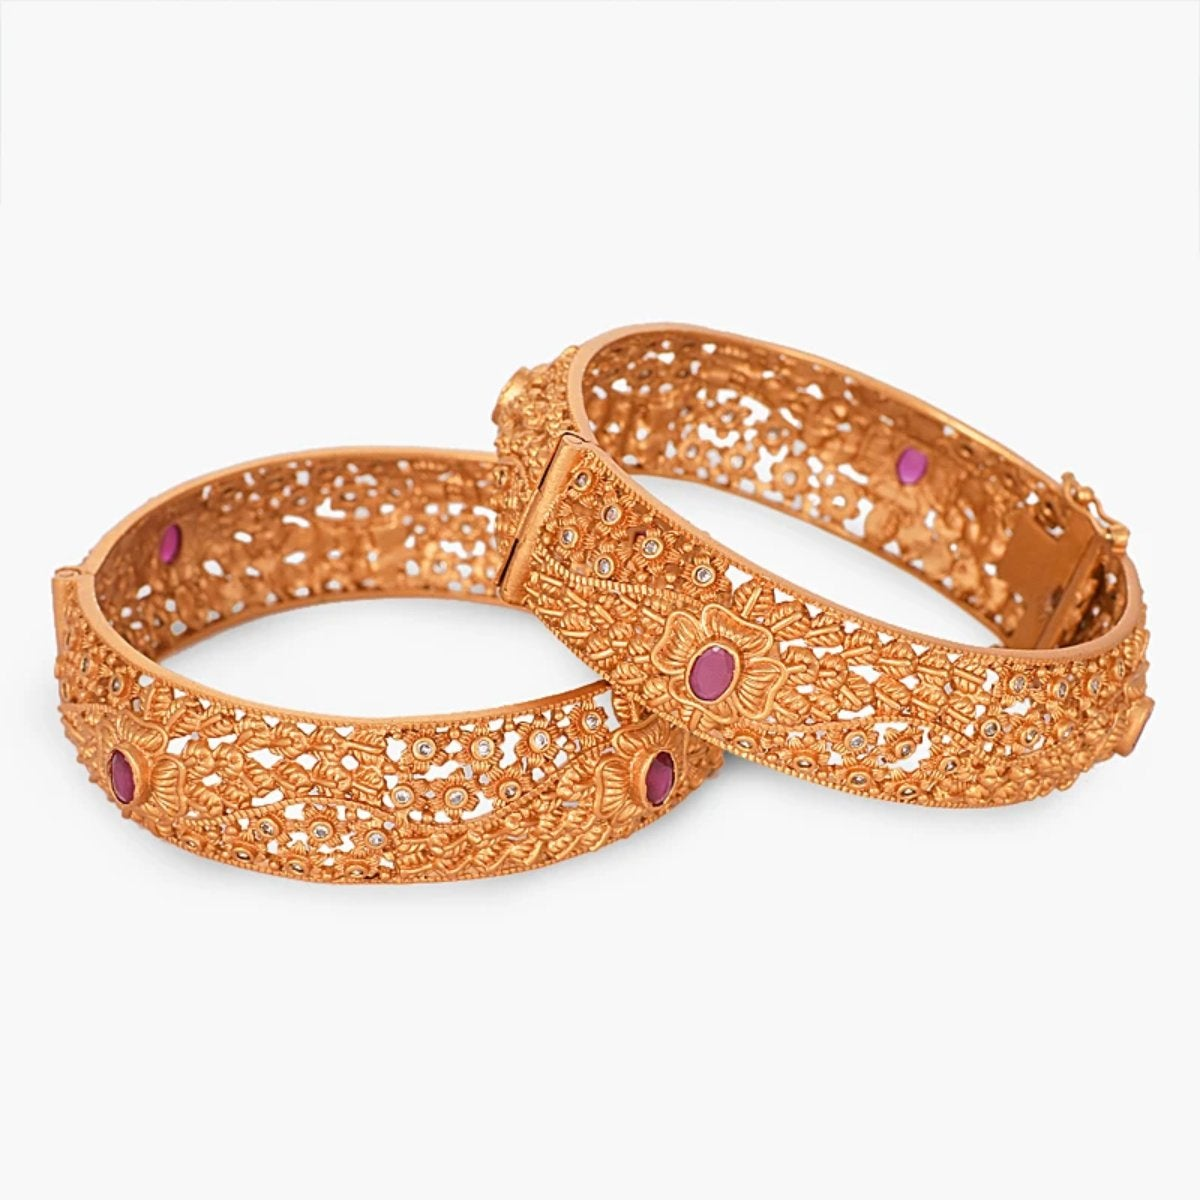 Inti Antique Bangle